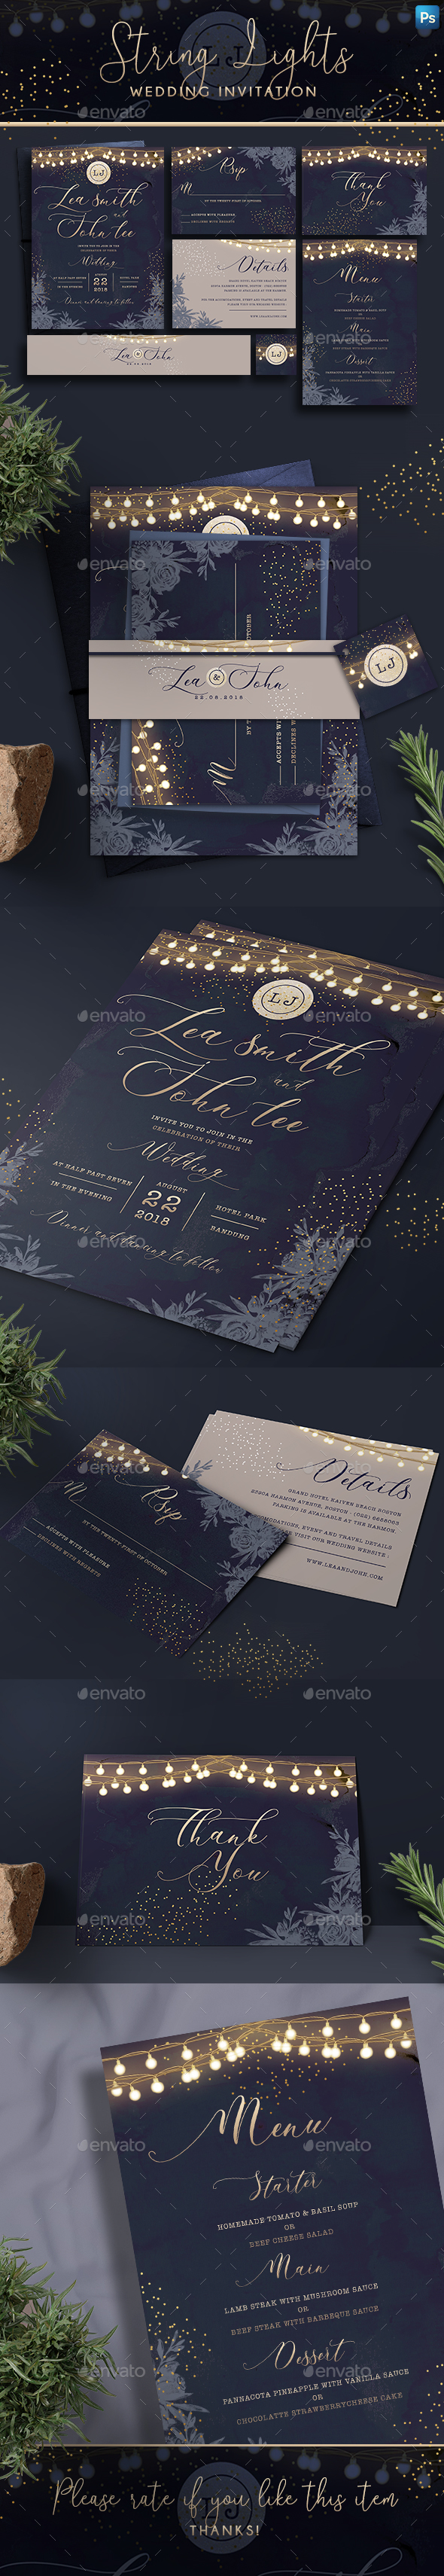 String Lights Invitation - Weddings Cards & Invites